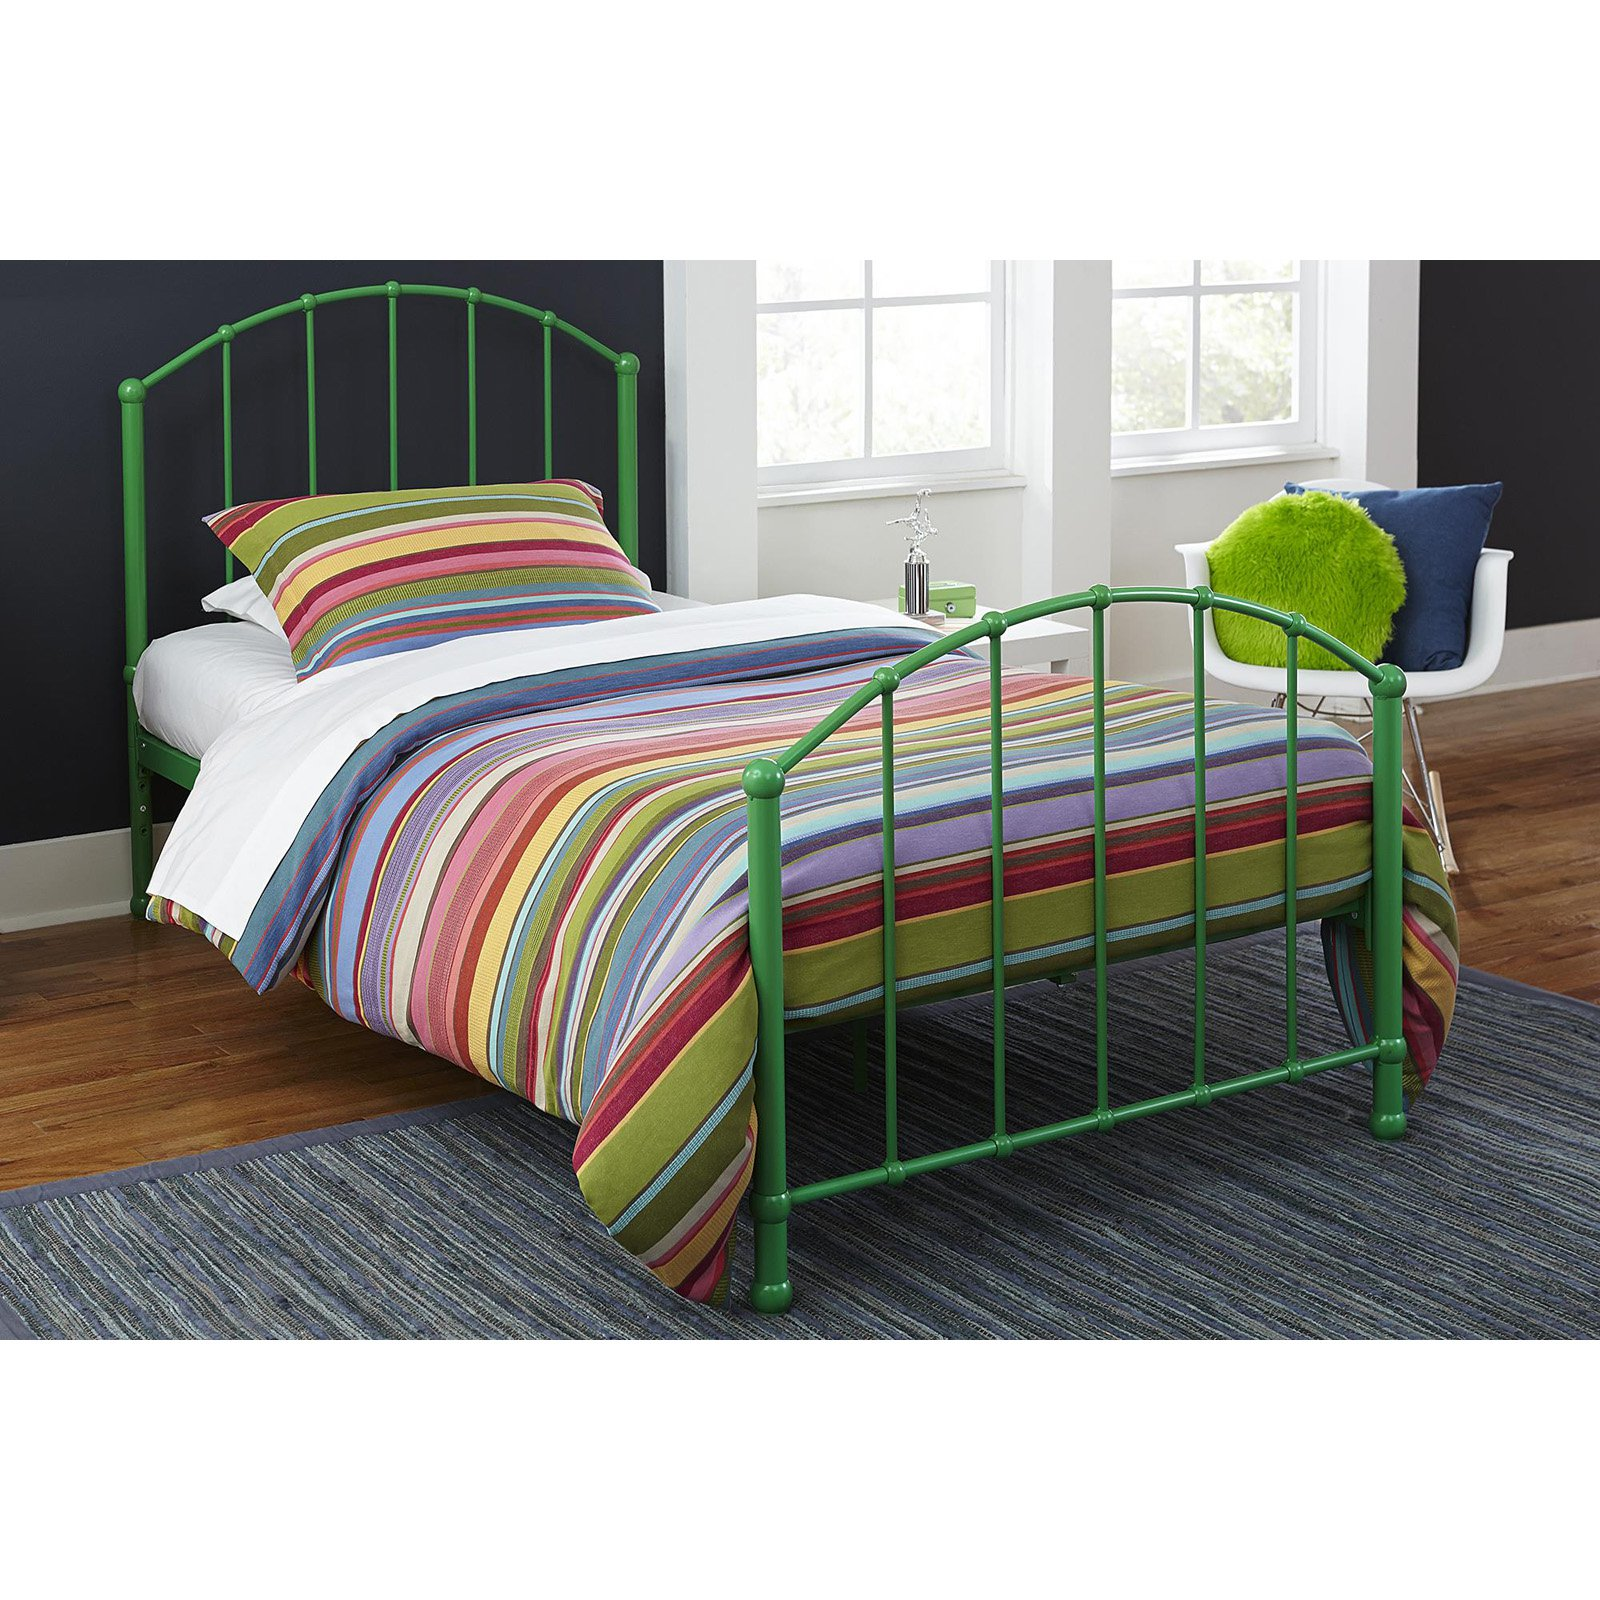 DHP BrickMill Ivy Metal Bed Frame, Twin Size, Multiple Colors